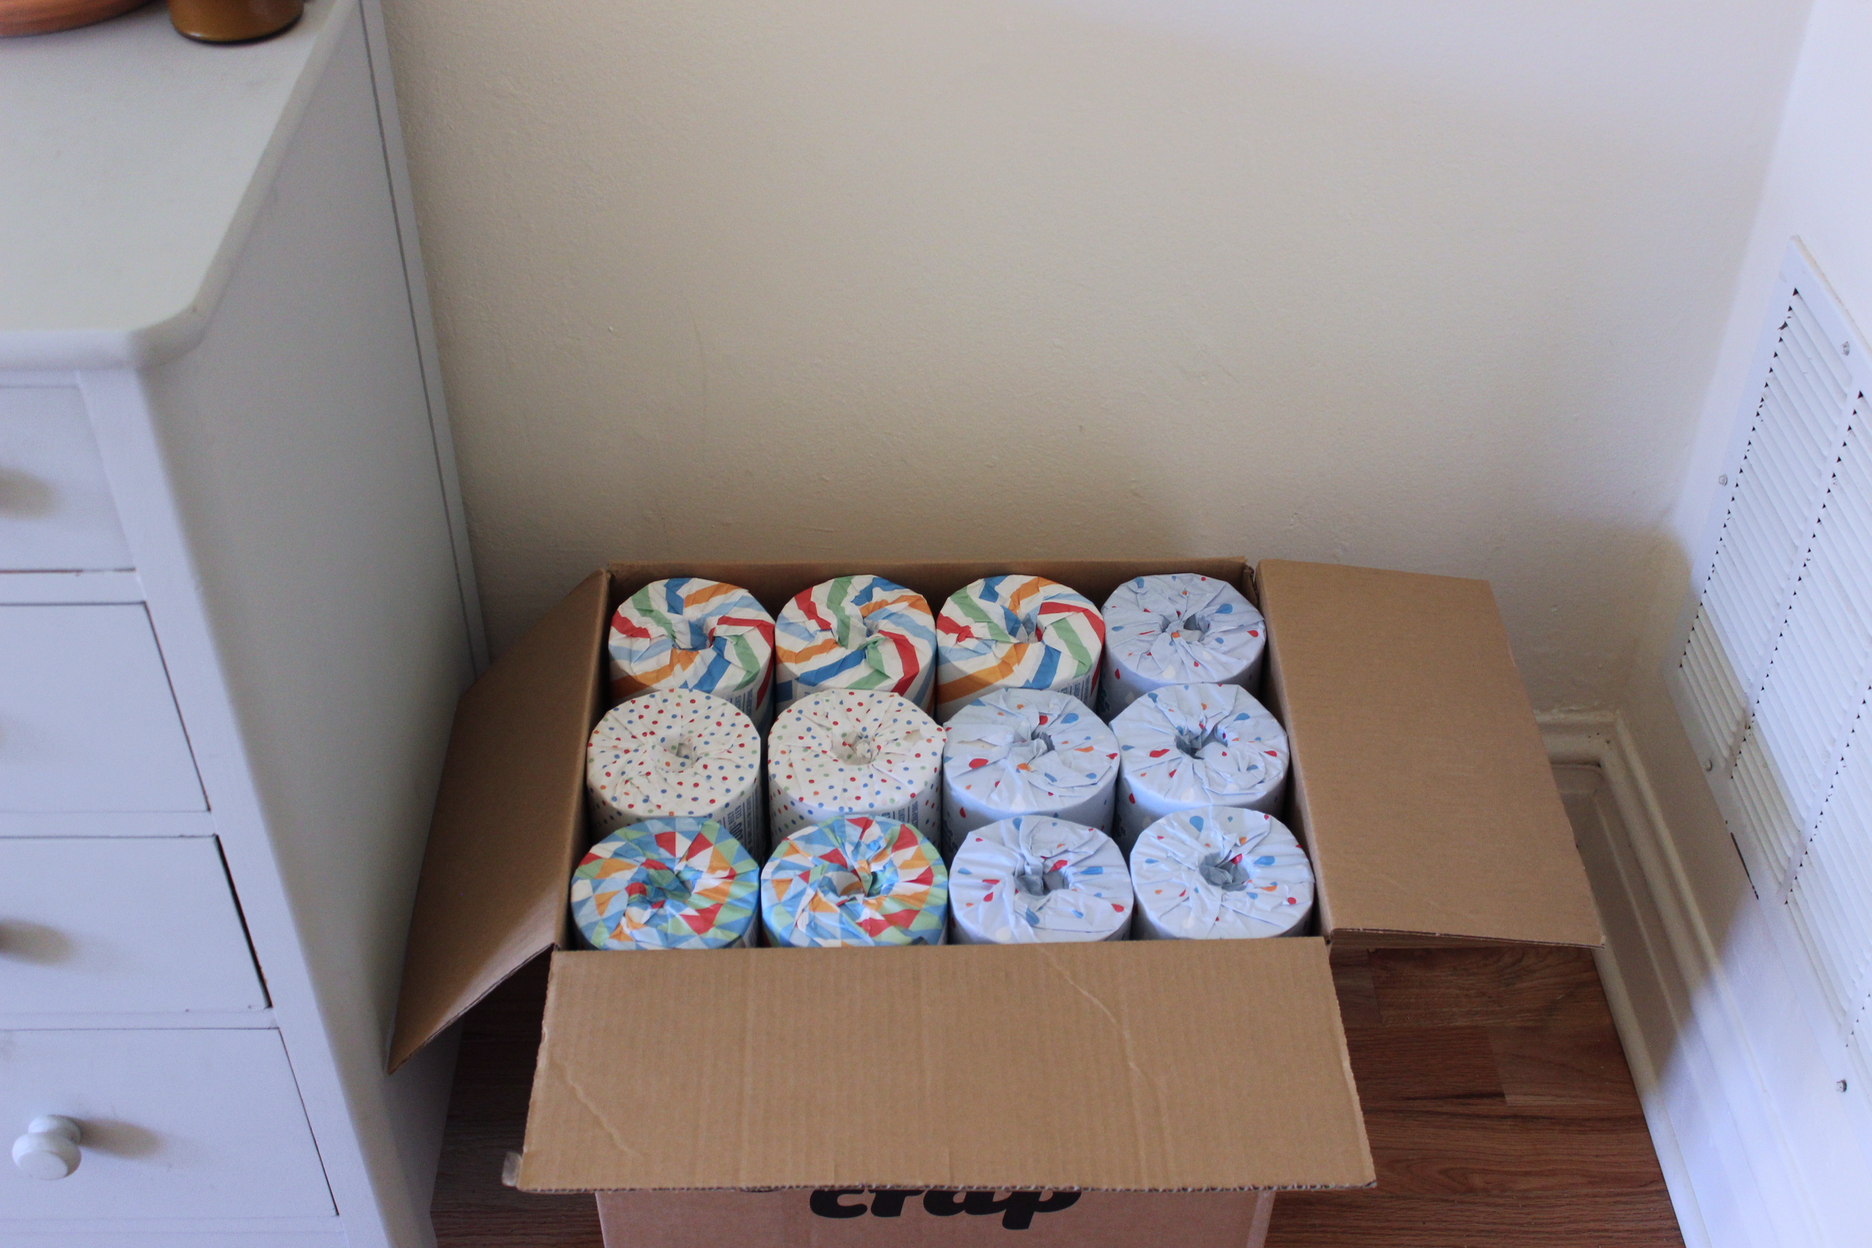 Trying out zero waste, paper-wrapped toilet paper from Who Gives a Crap | Litterless